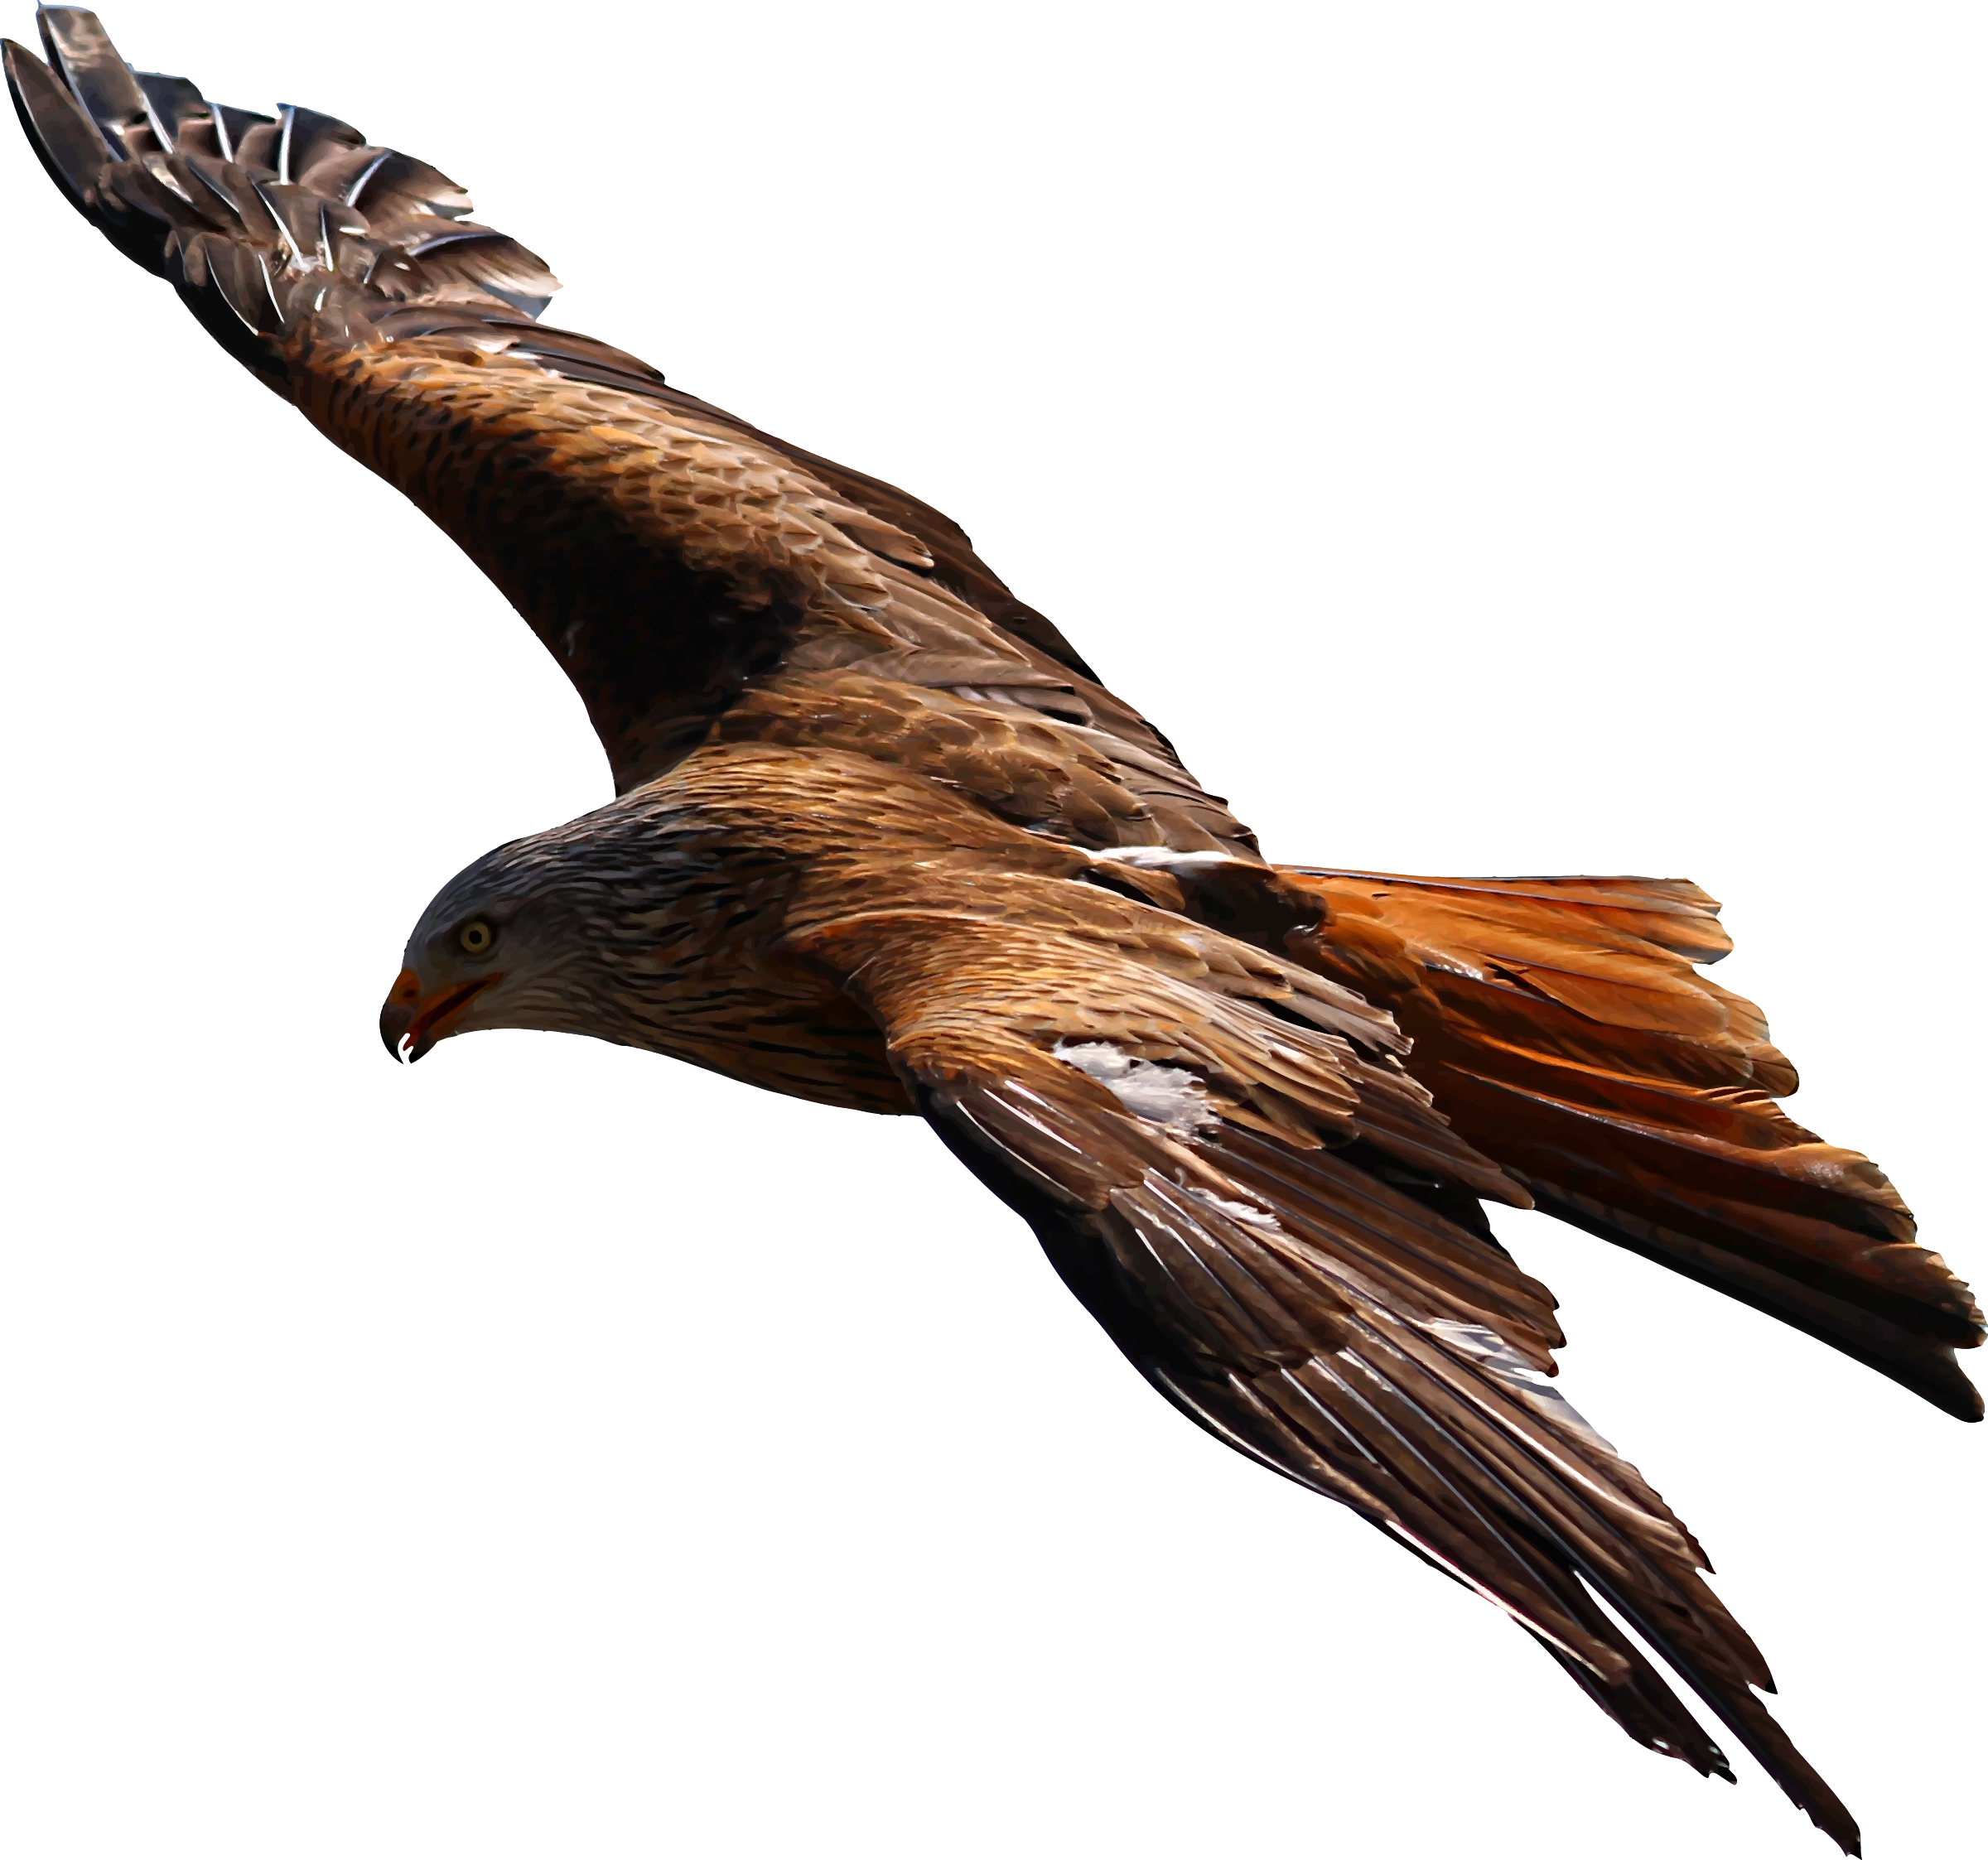 Free stock photo of flying eagle vector file public domain photo flying eagle vector file graphic by public domain altavistaventures Images